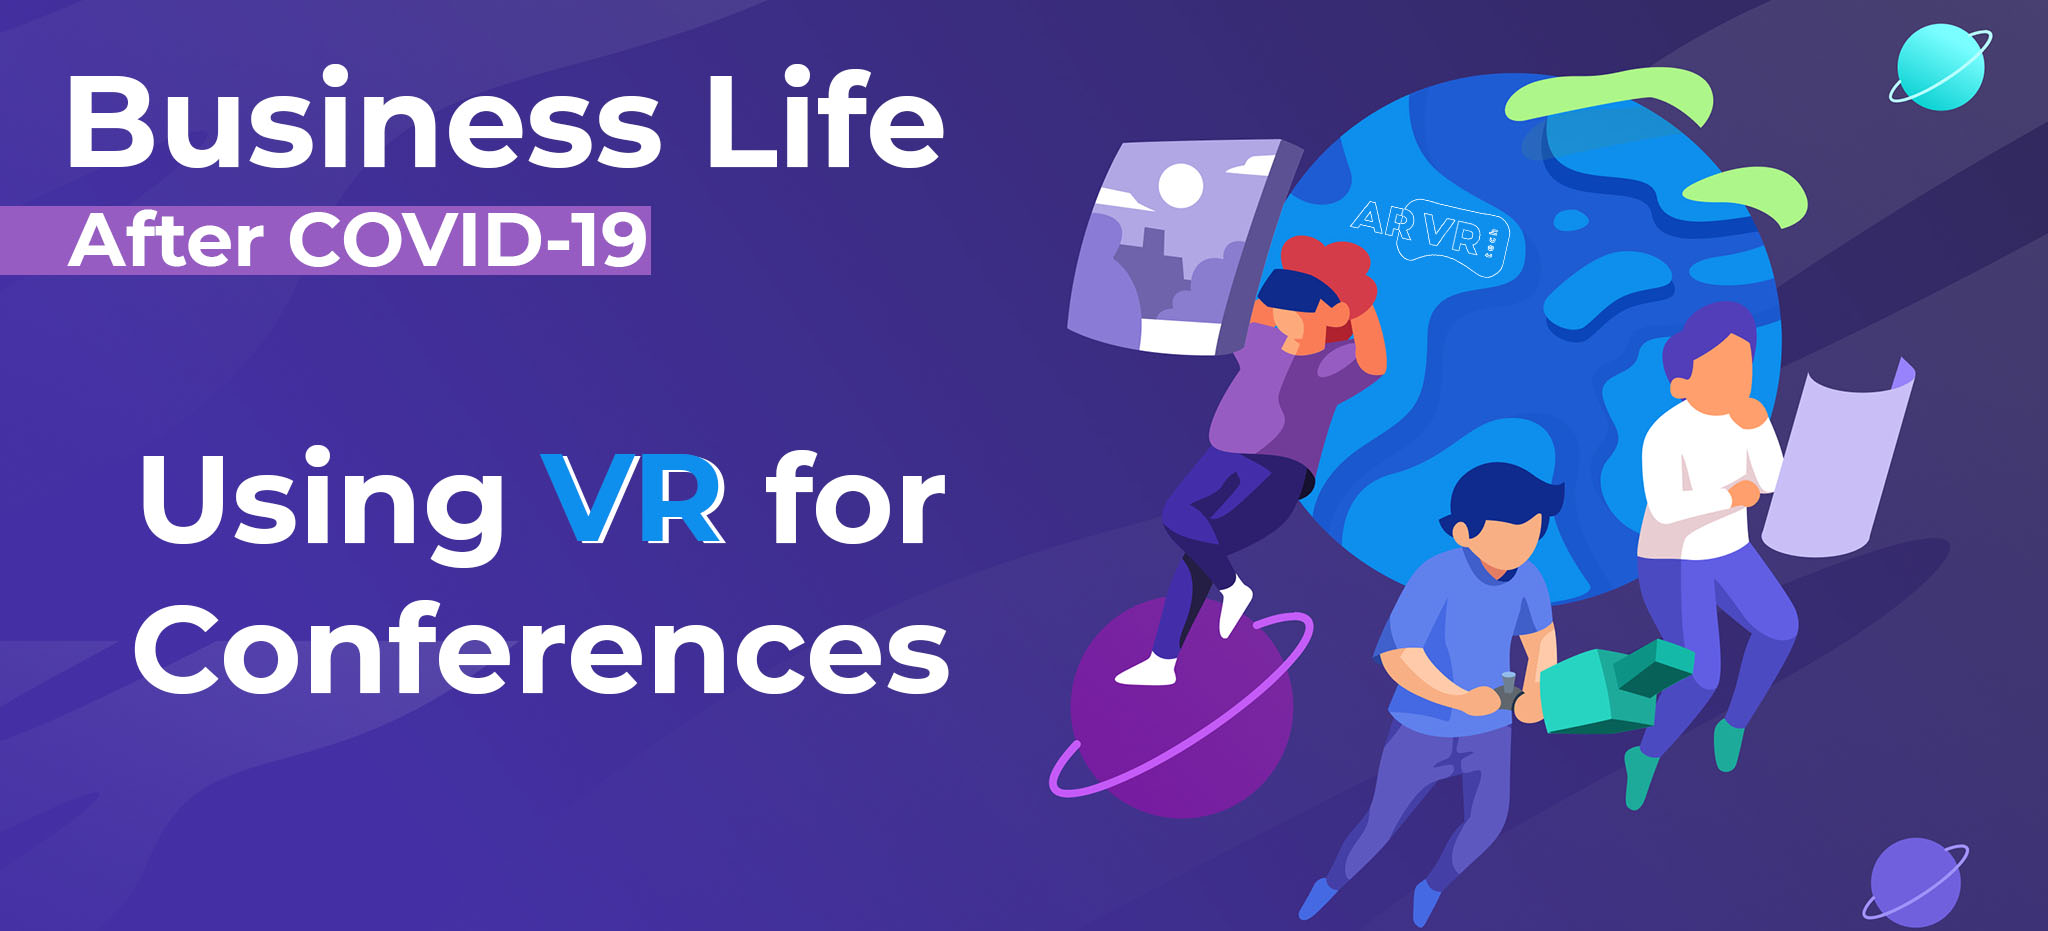 Business Life After Coronavirus VR for Conferences